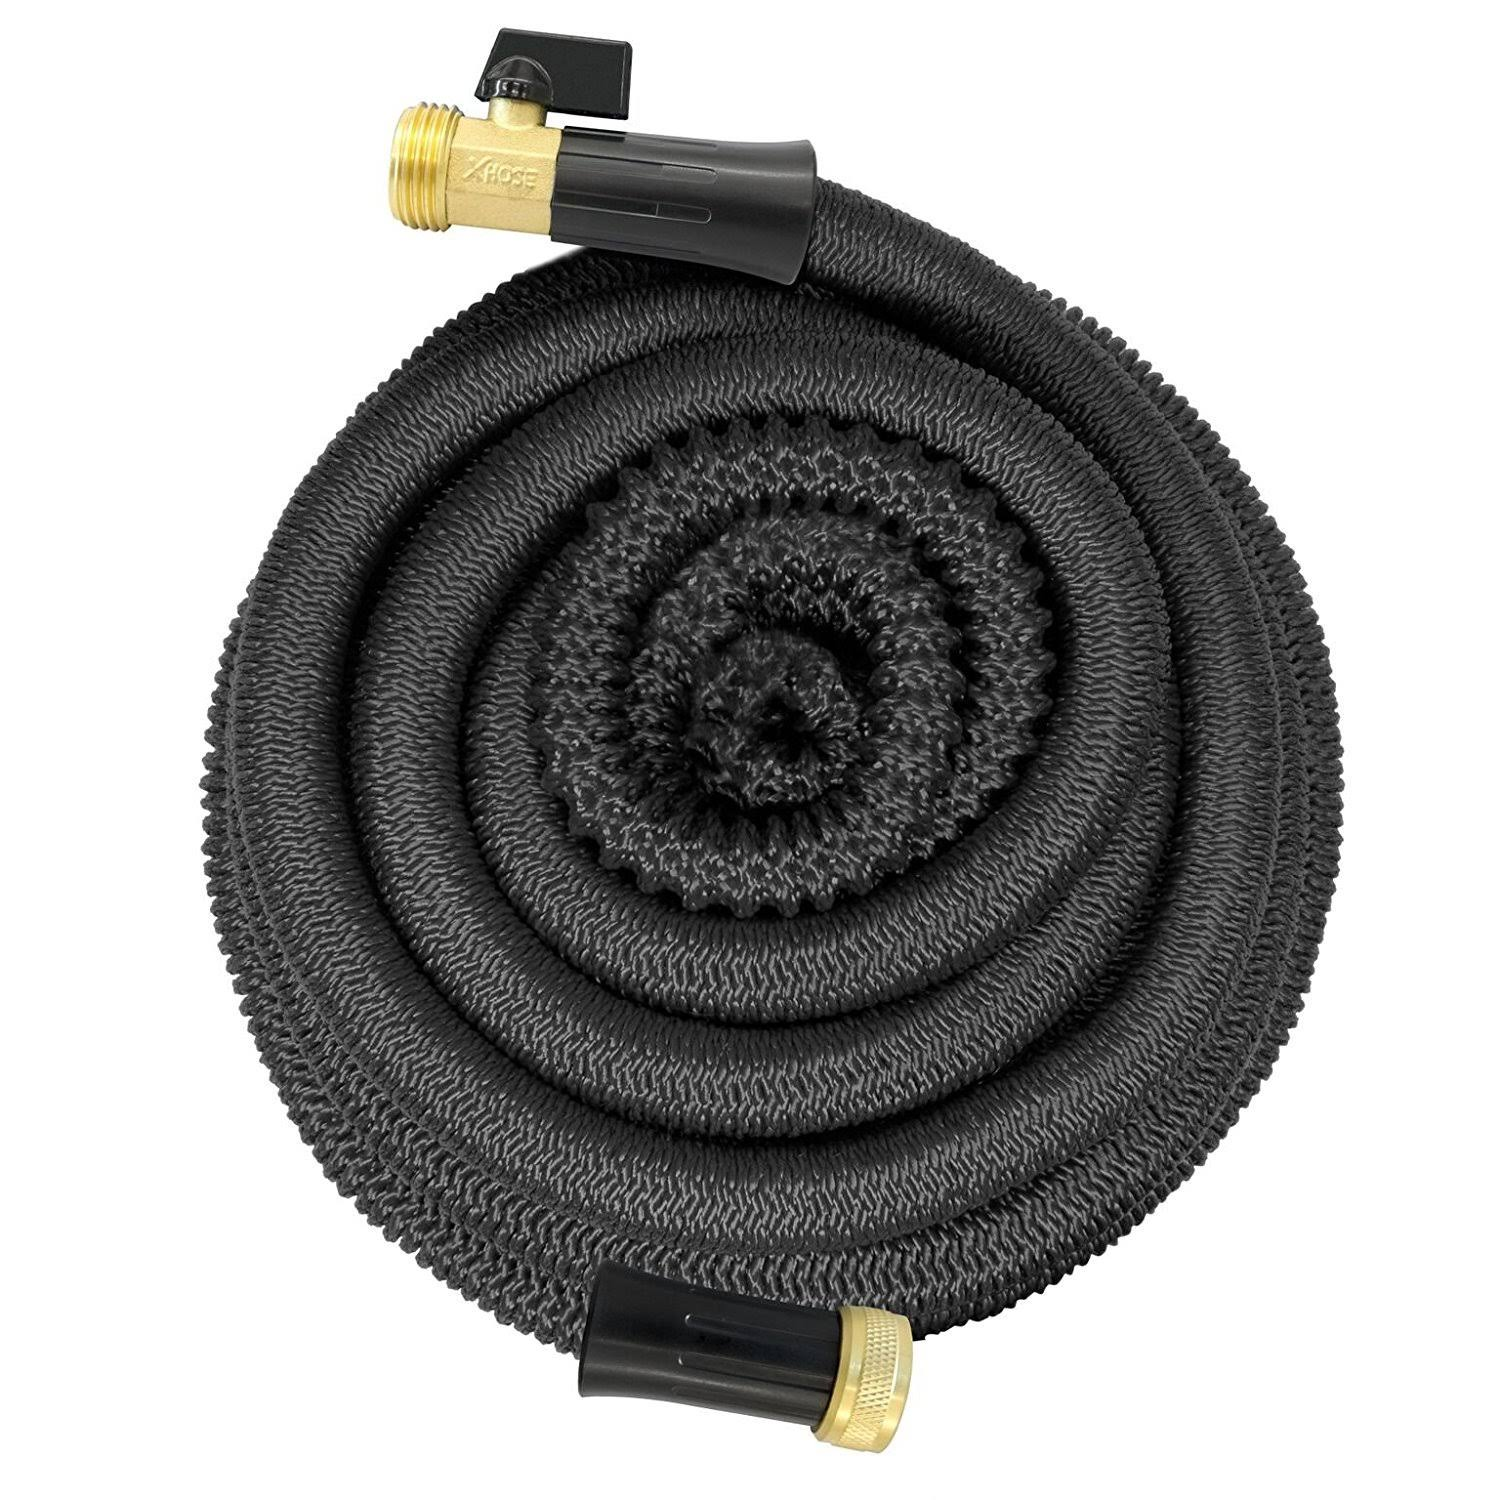 Xhose Pro Extreme Lightweight Hose & Brass Fittings